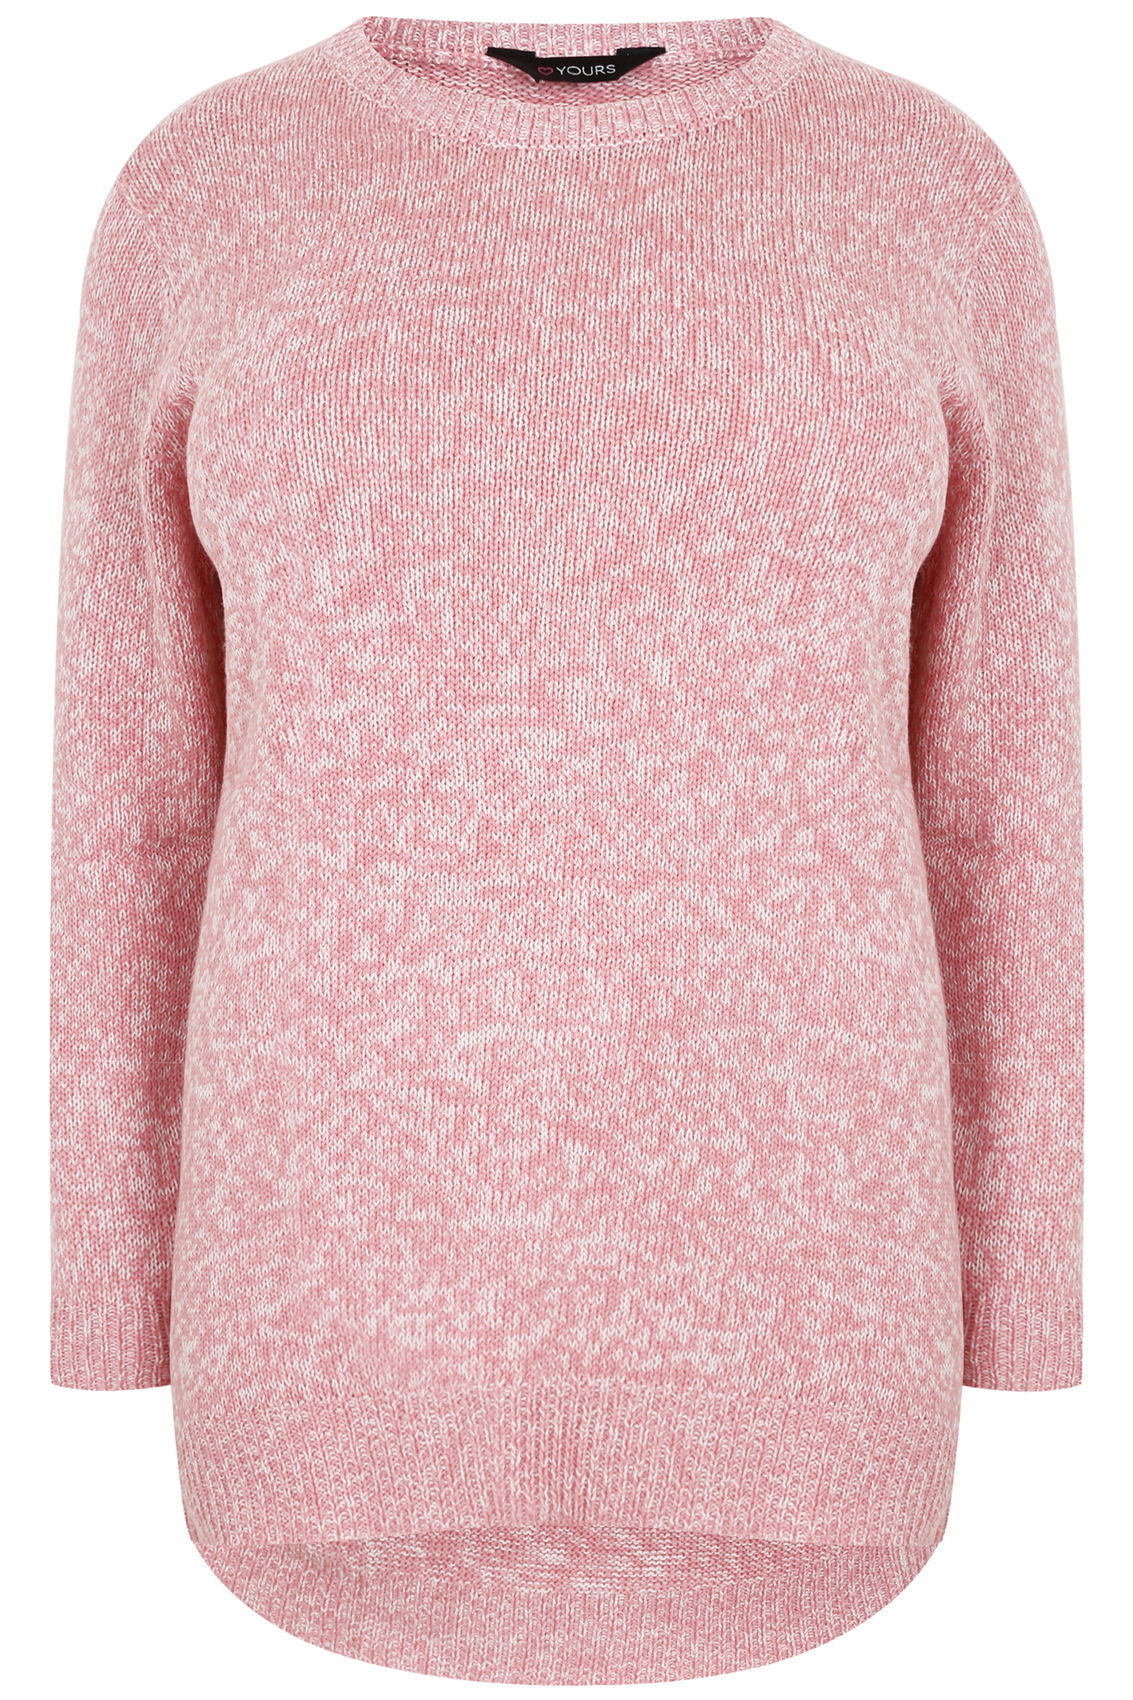 Pink & White Twist Knitted Longline Jumper, Plus size 16 to 36